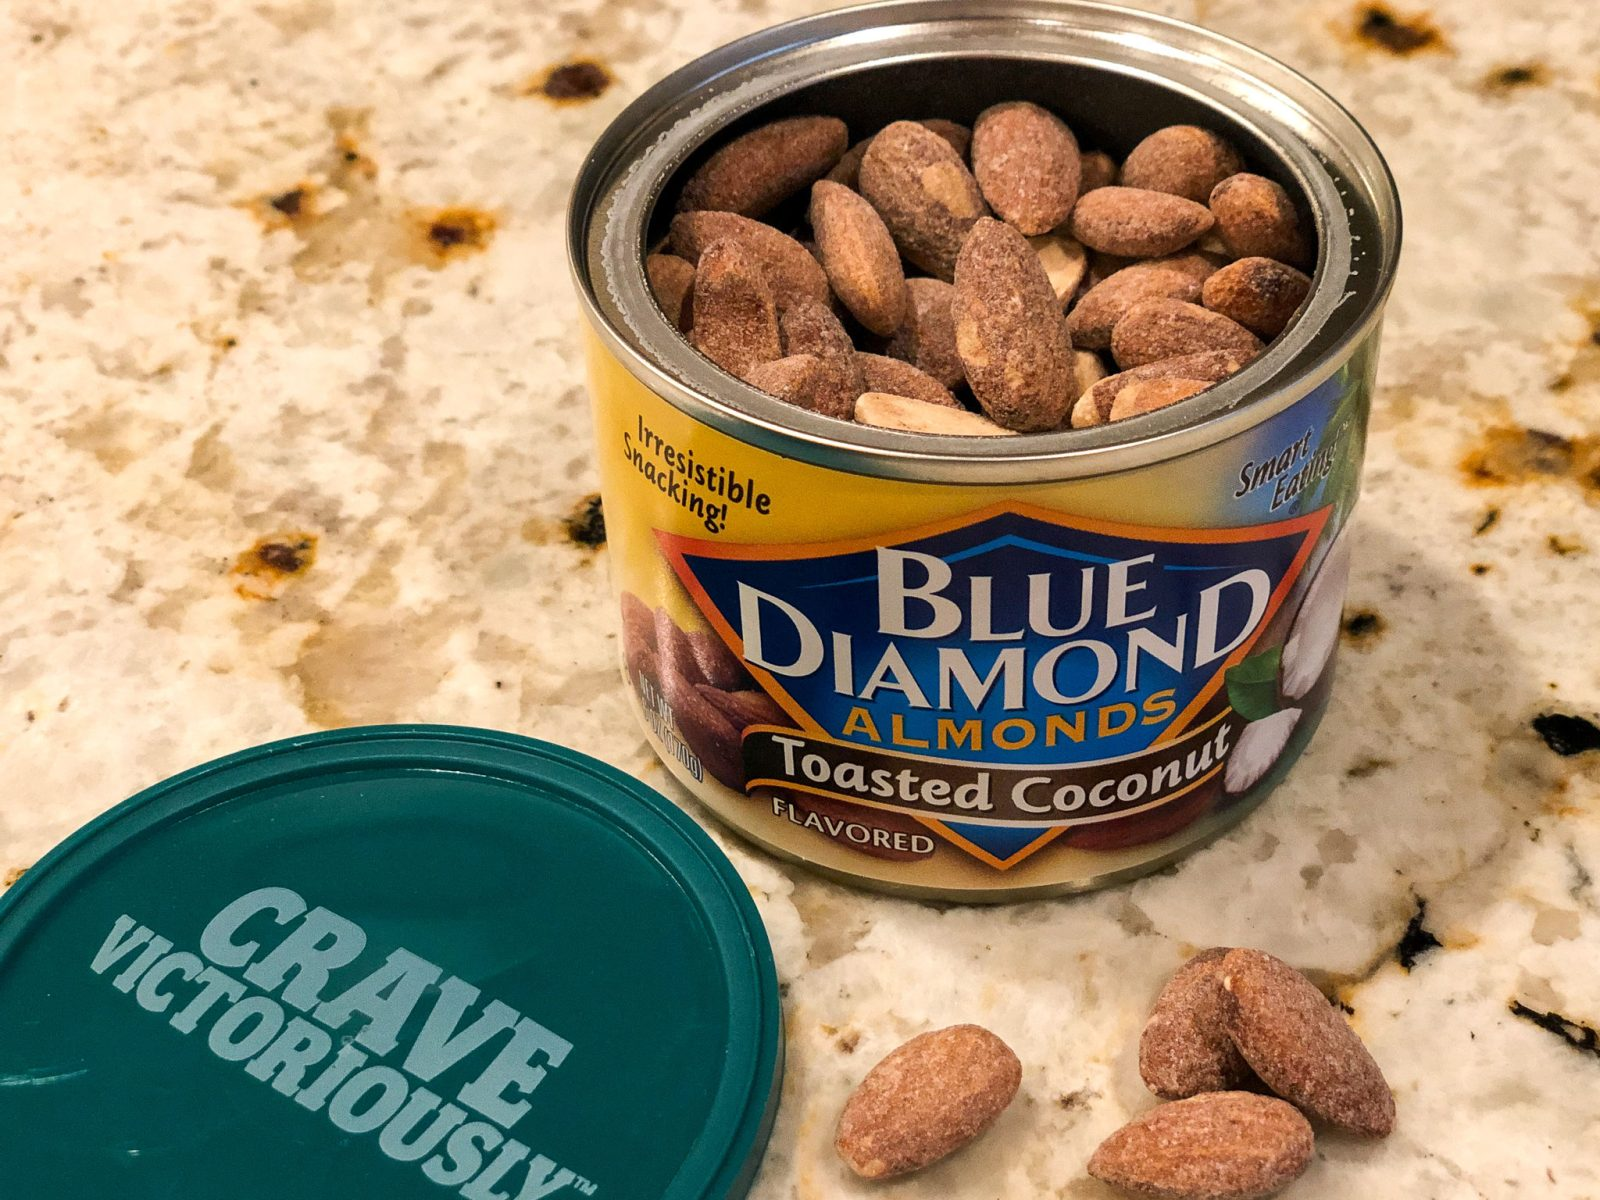 Blue Diamond Almonds For Half Price - Just $1.99 At Publix on I Heart Publix 1